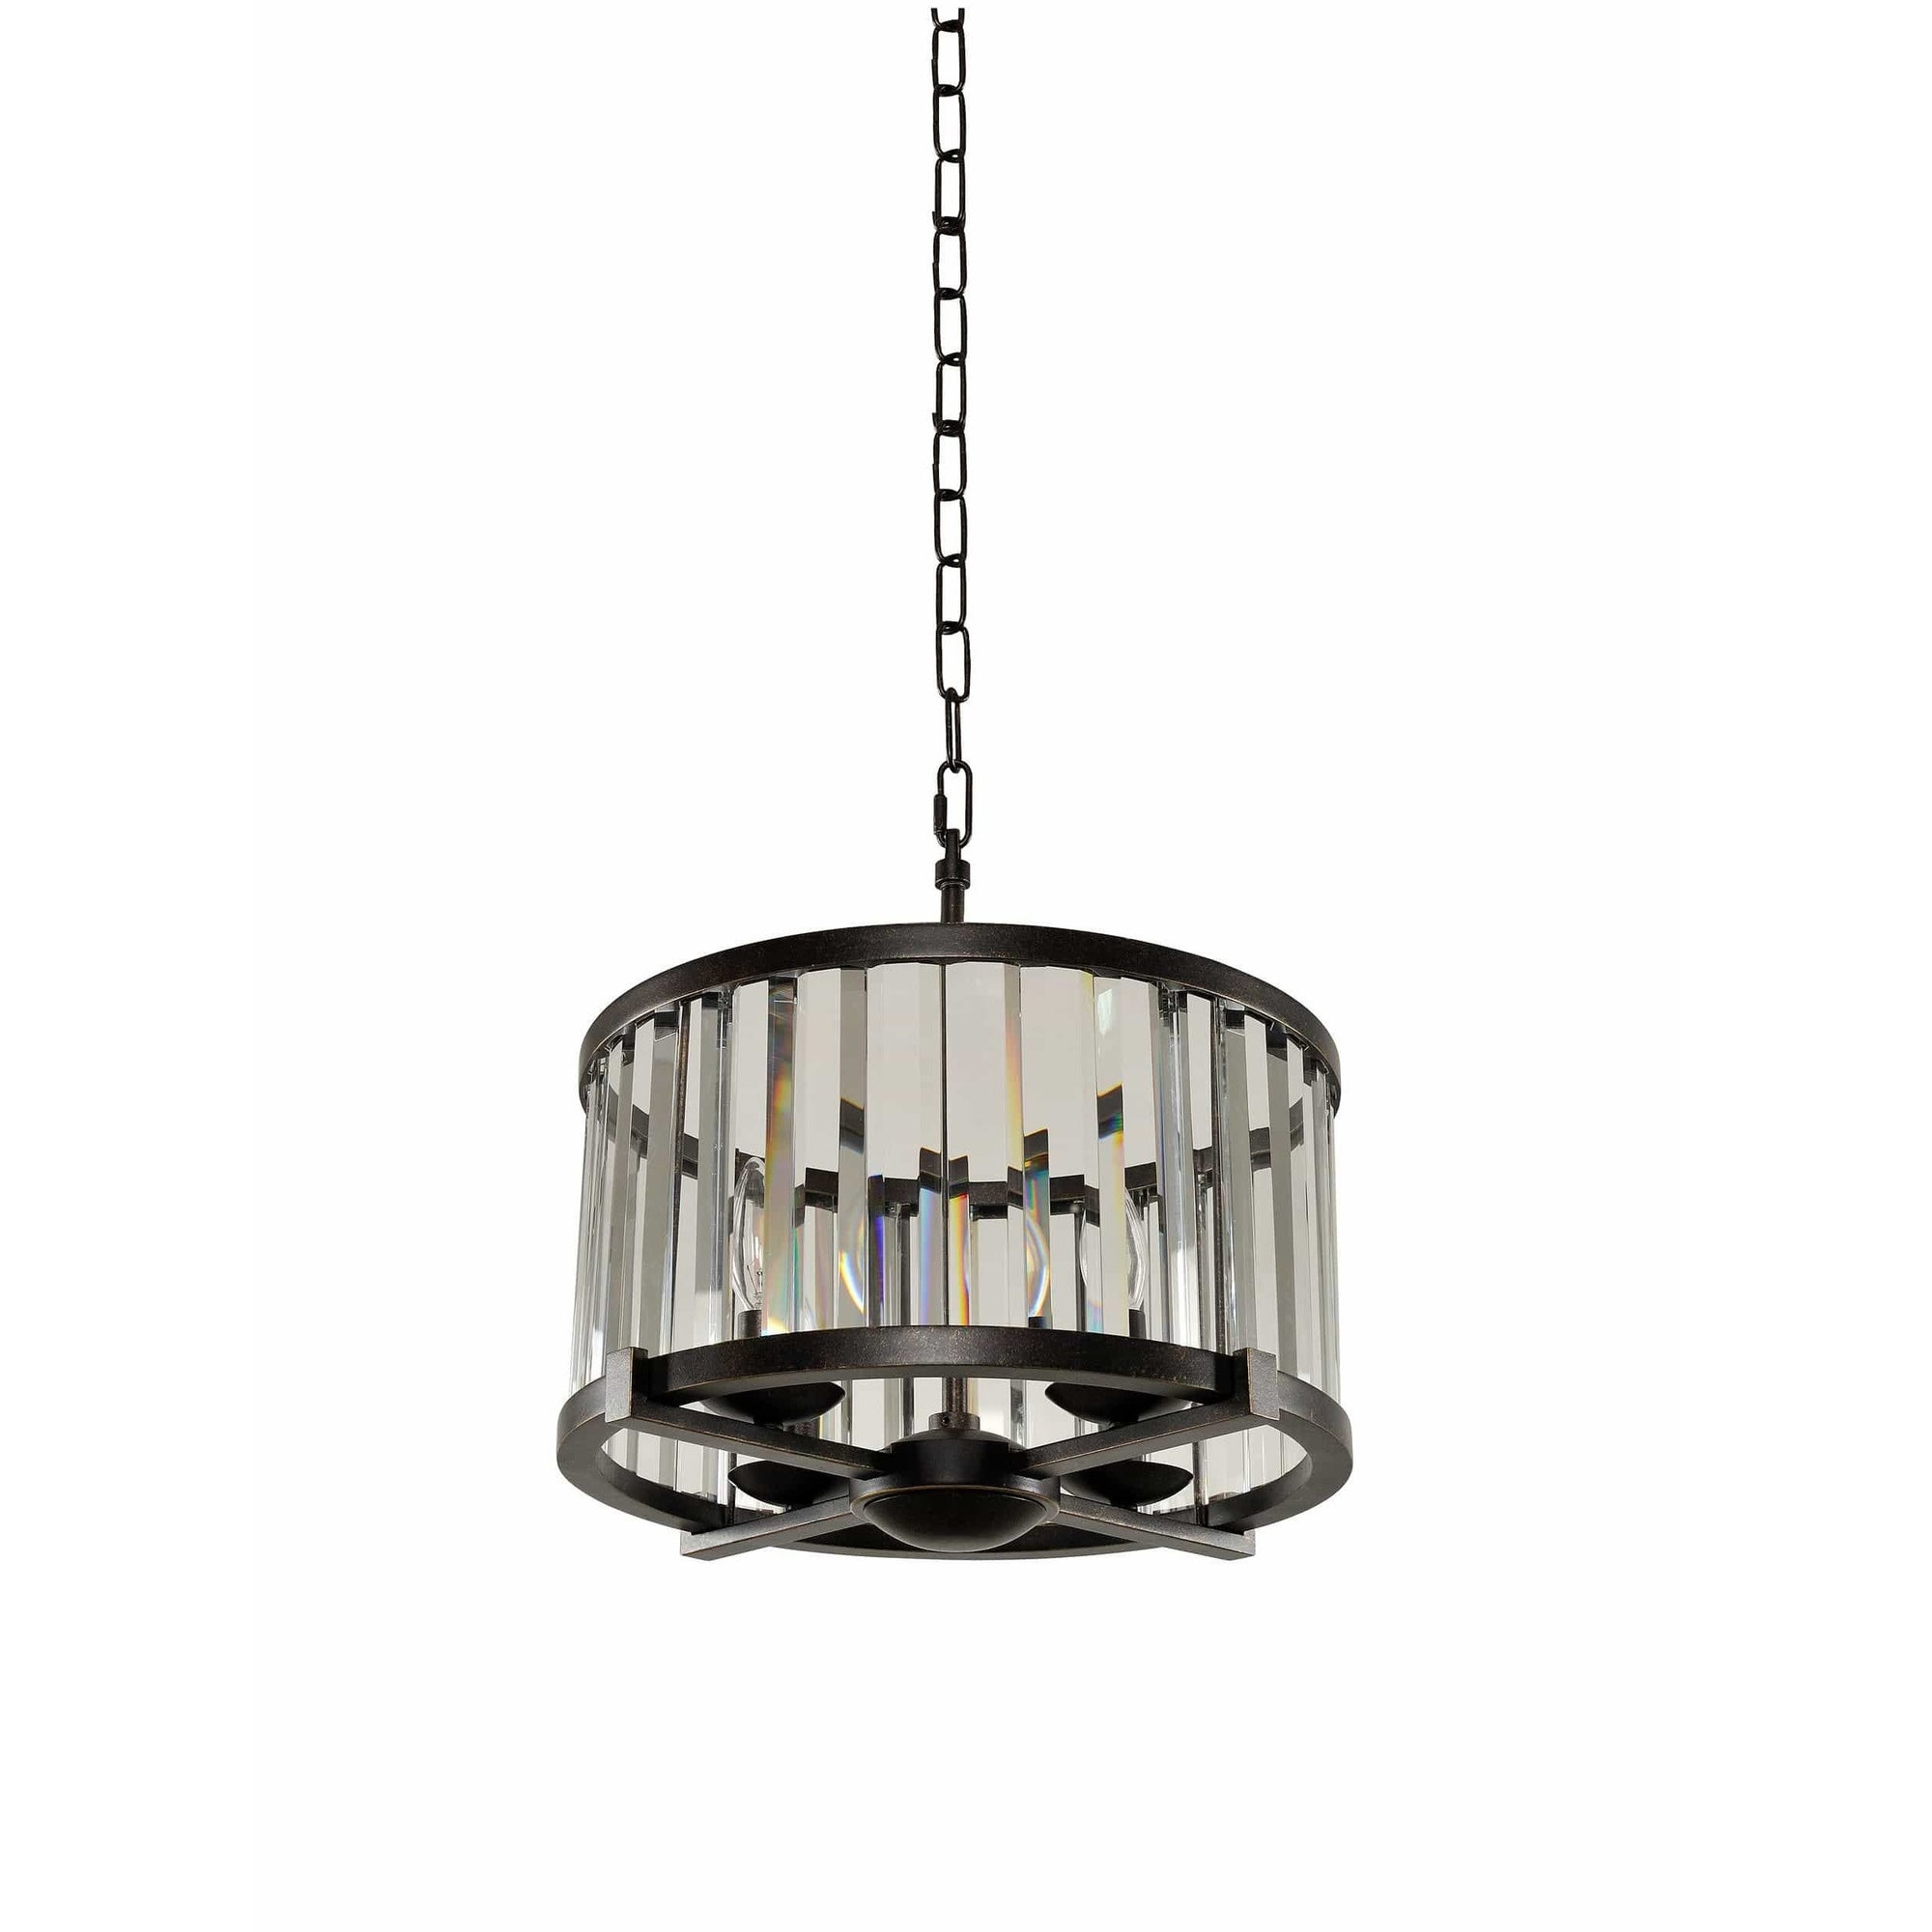 Kalco Lighting Pendants Sienna Bronze Essex 16 Inch Convertible Pendant - Semi Flush Mount By Kalco Lighting 314252